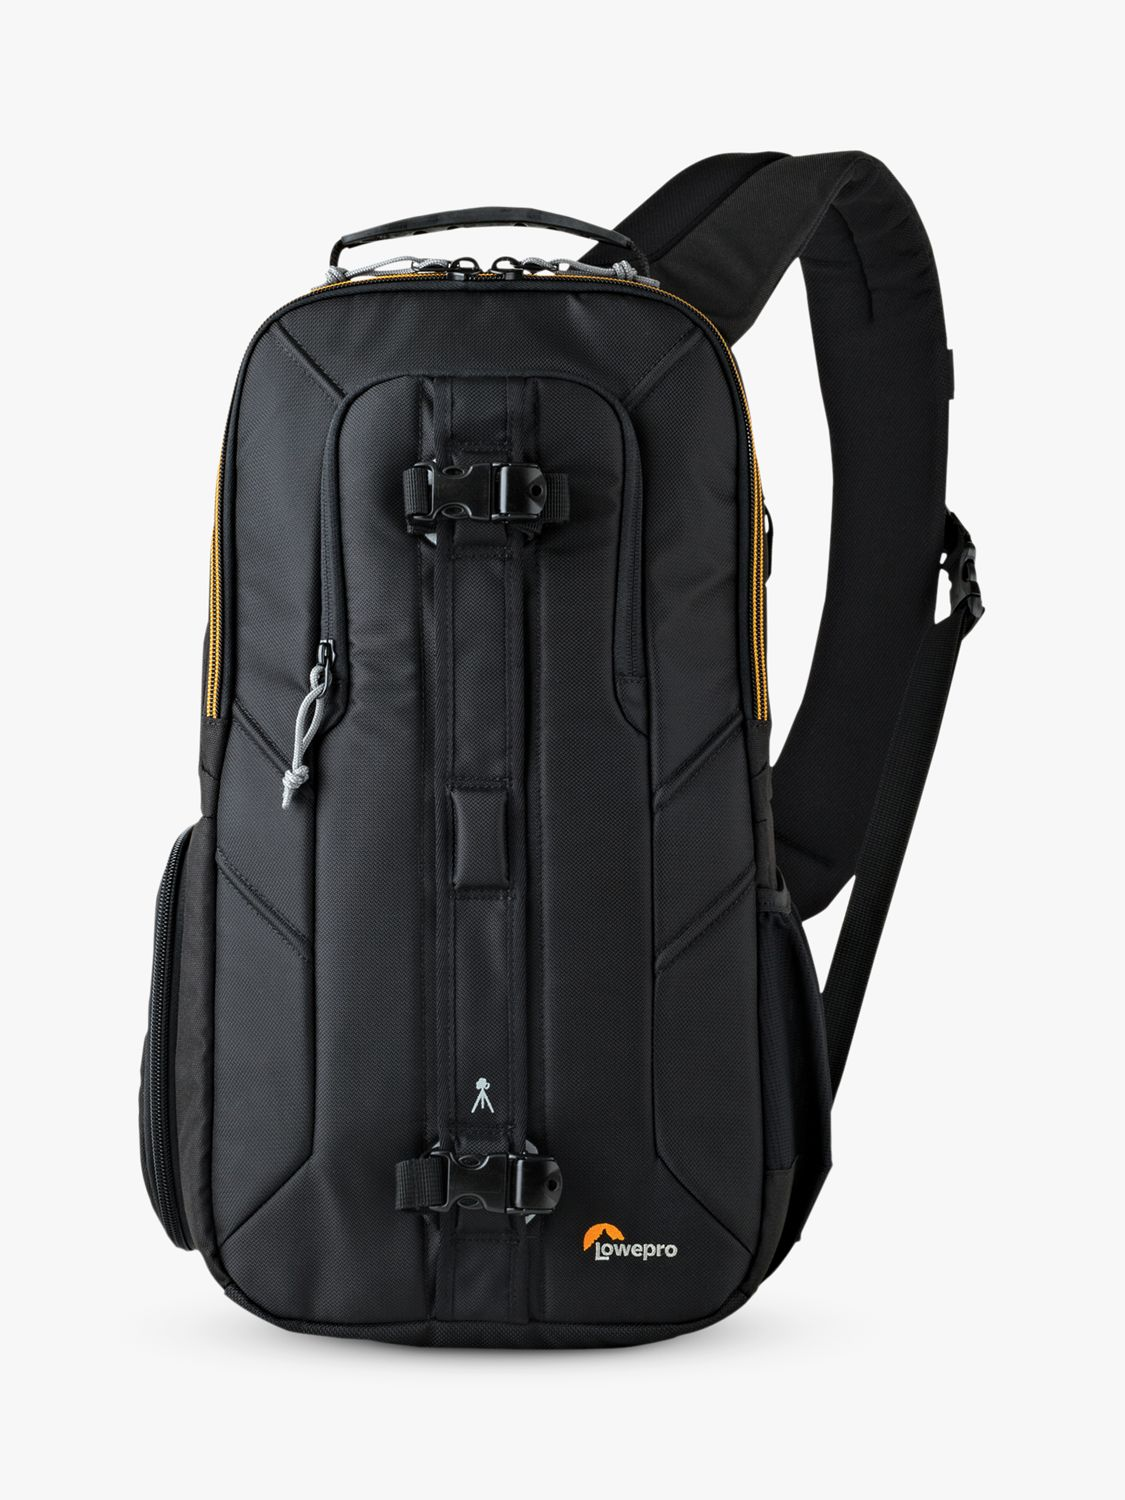 Lowepro Lowepro Slingshot Edge 250 AW Camera and Tablet Backpack, Black